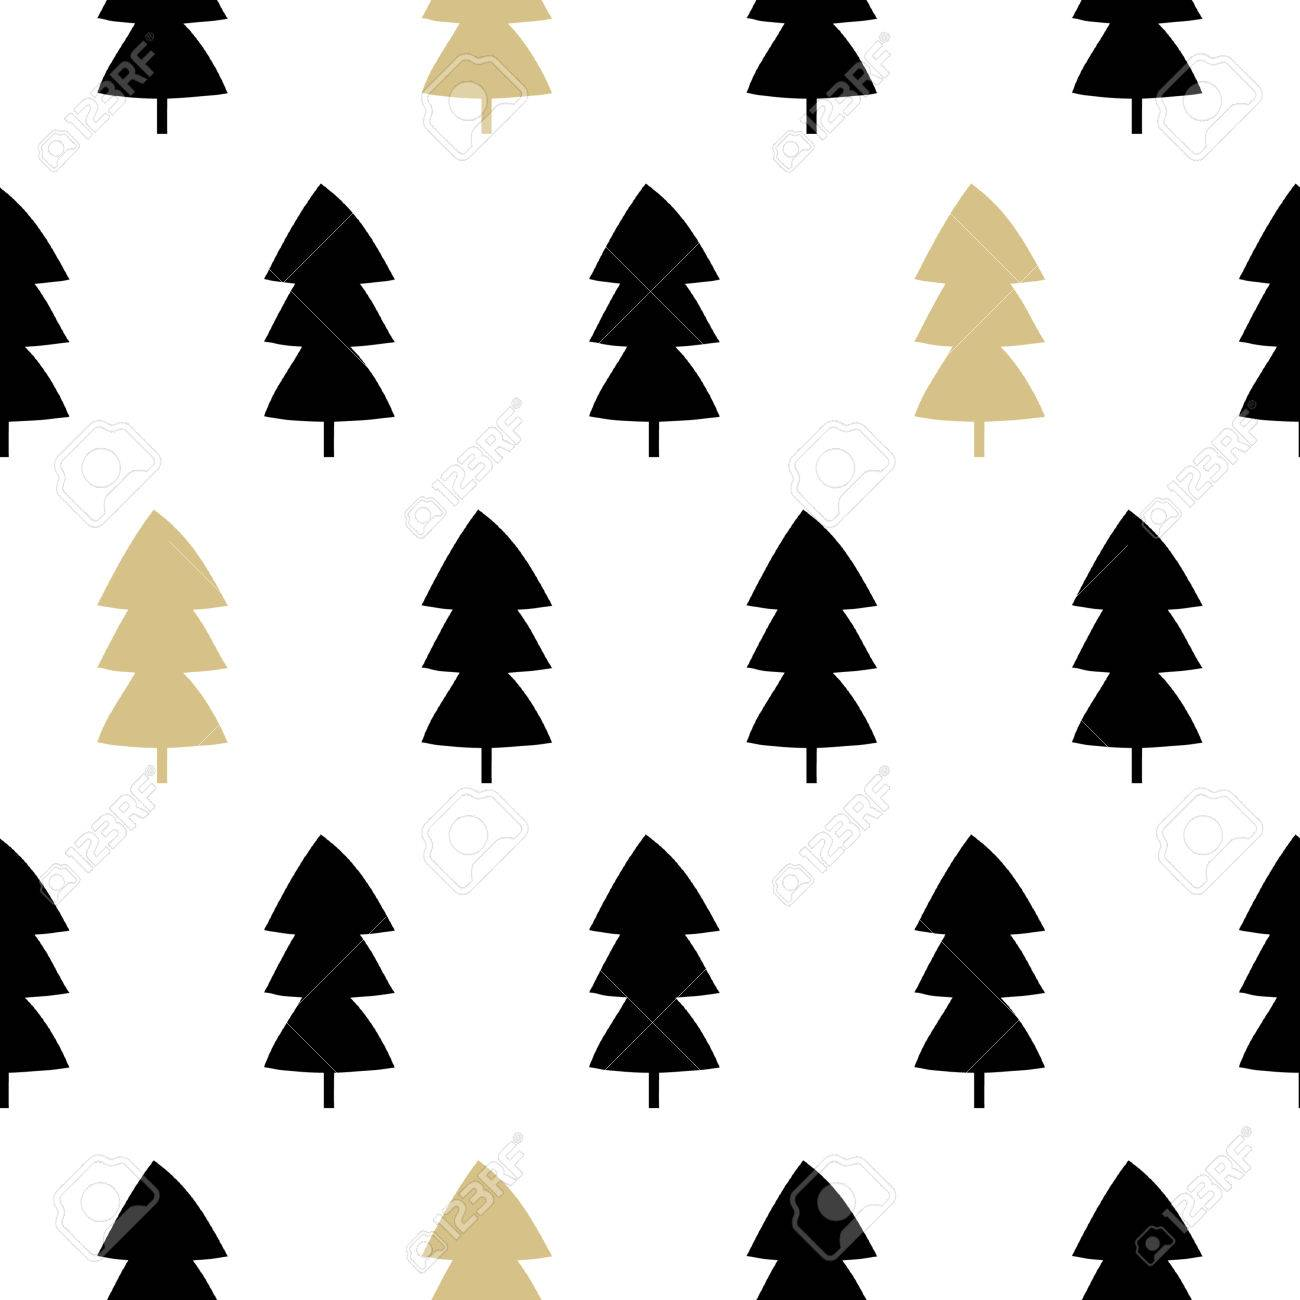 Seamless Repeating Pattern With Christmas Trees In Black And Royalty Free Cliparts Vectors And Stock Illustration Image 66071773